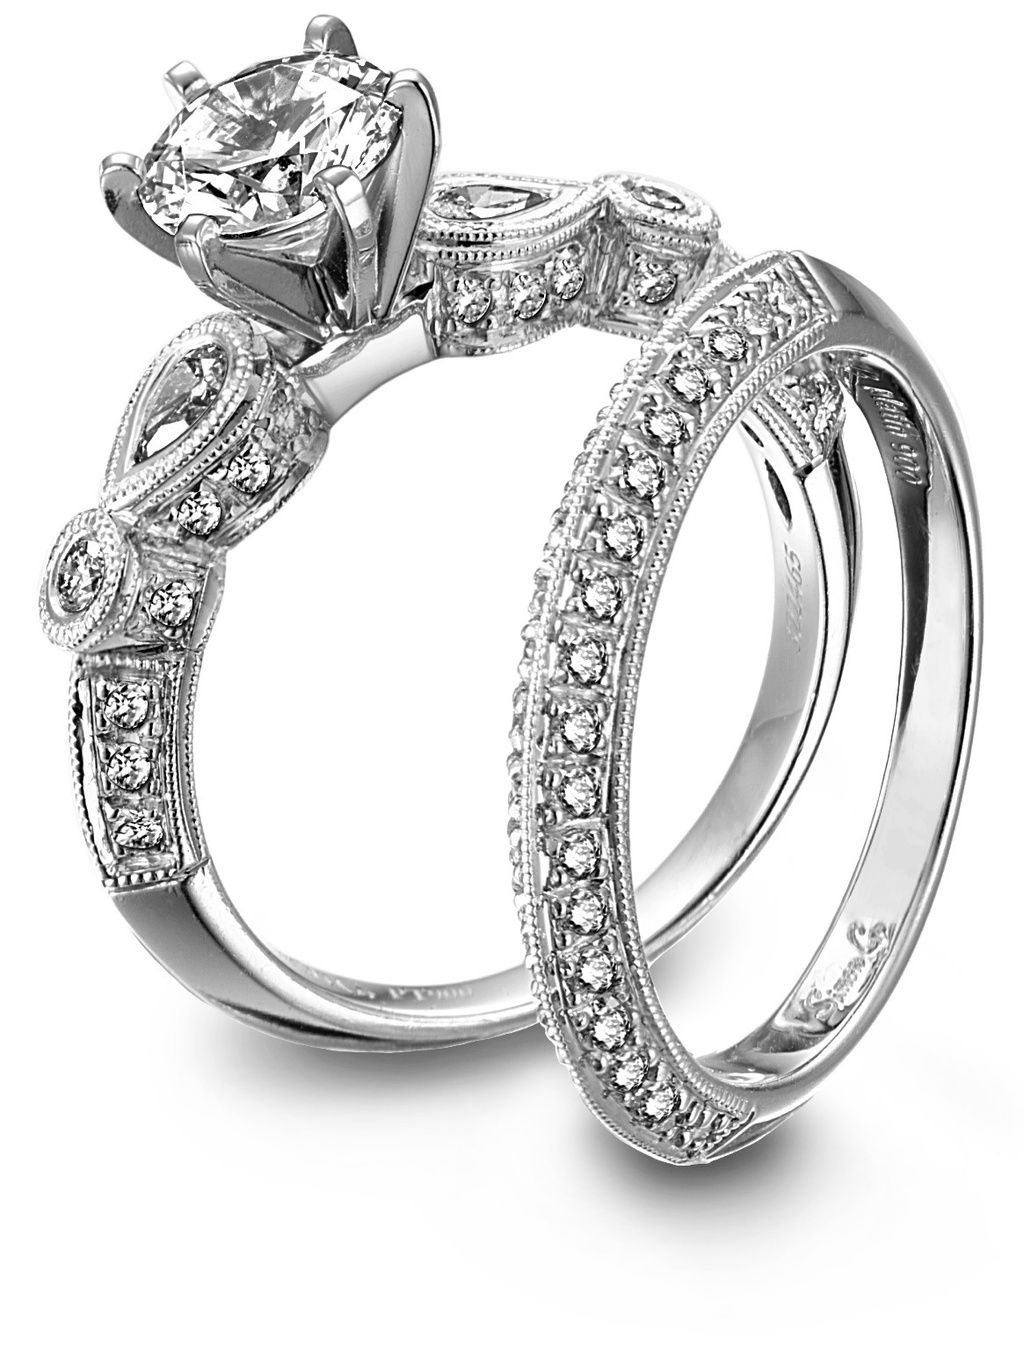 Diamond And Platinum Engagement Ring Wedding Band Set By Simon G